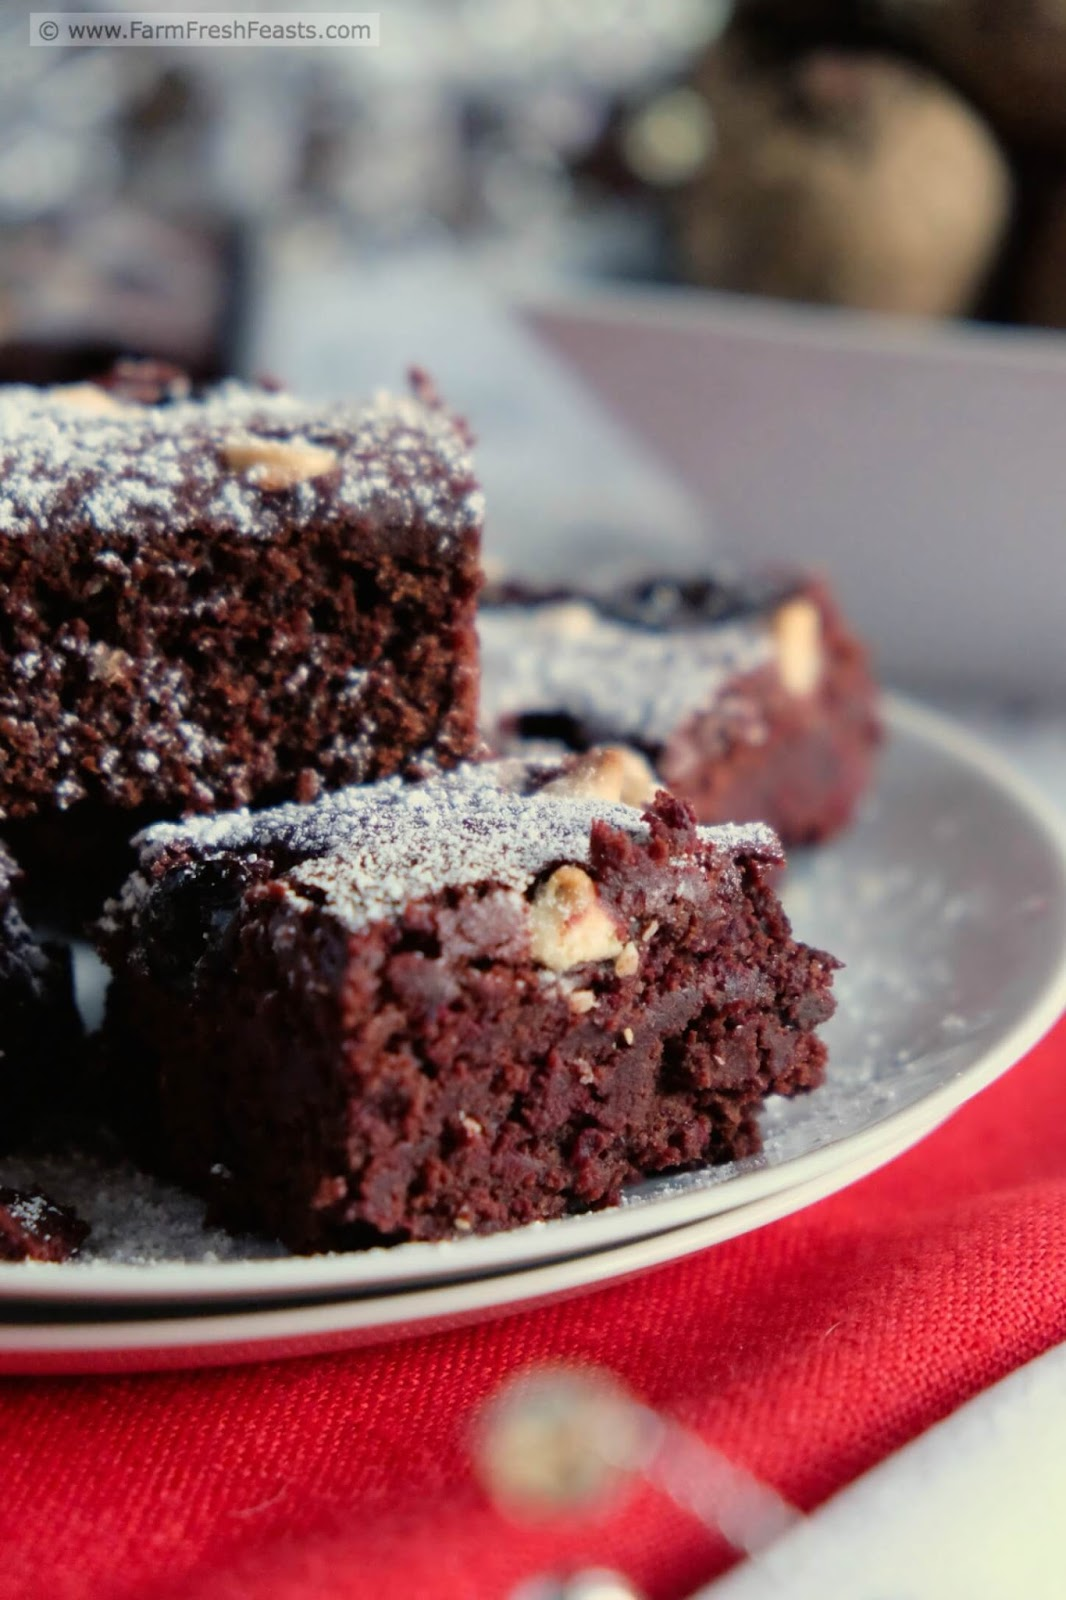 Farm Fresh Feasts: Chocolate Cherry Beet Brownies